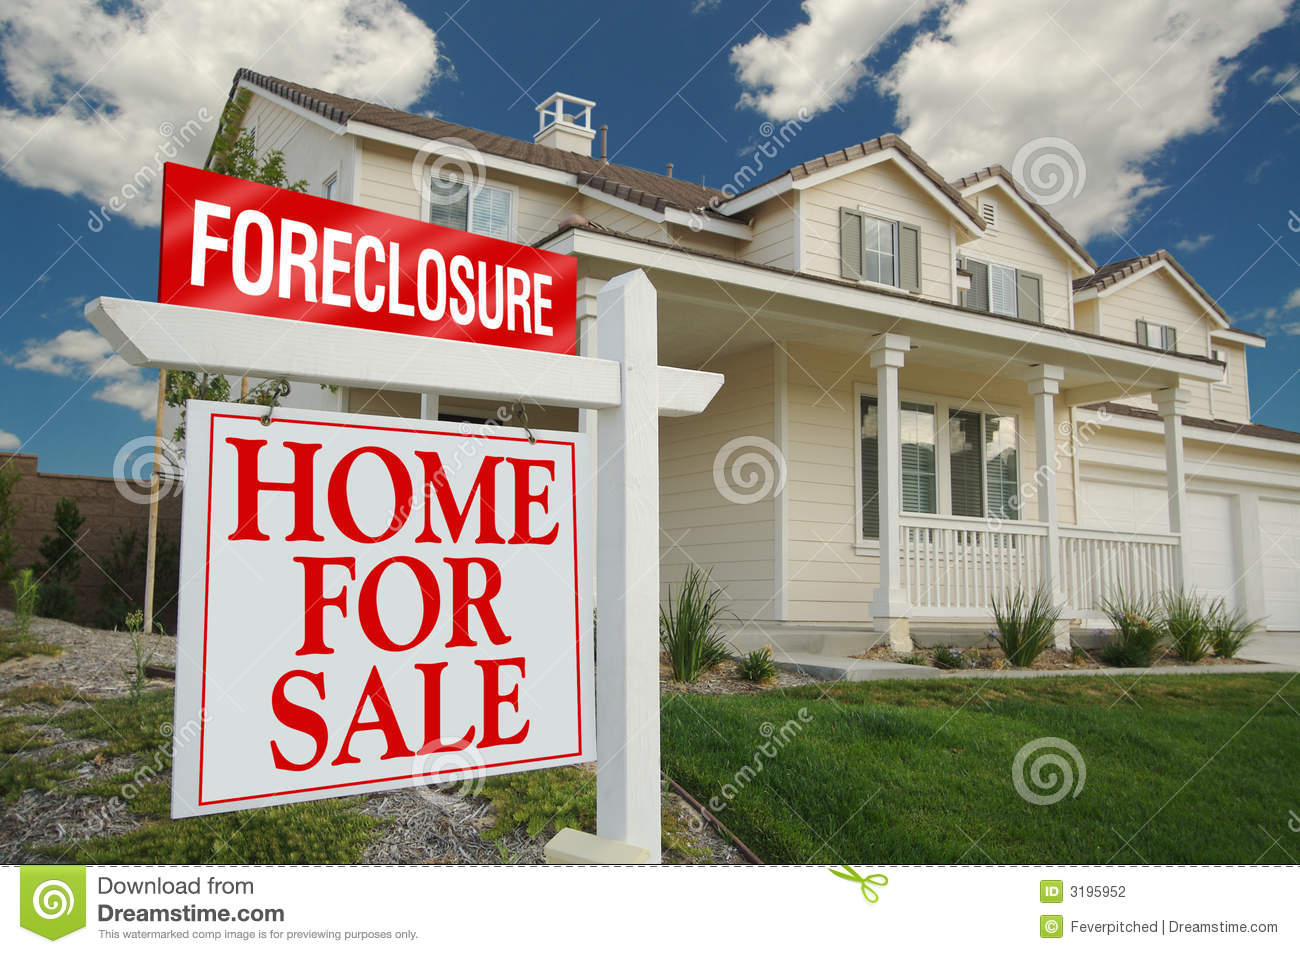 Foreclosure Sign and House